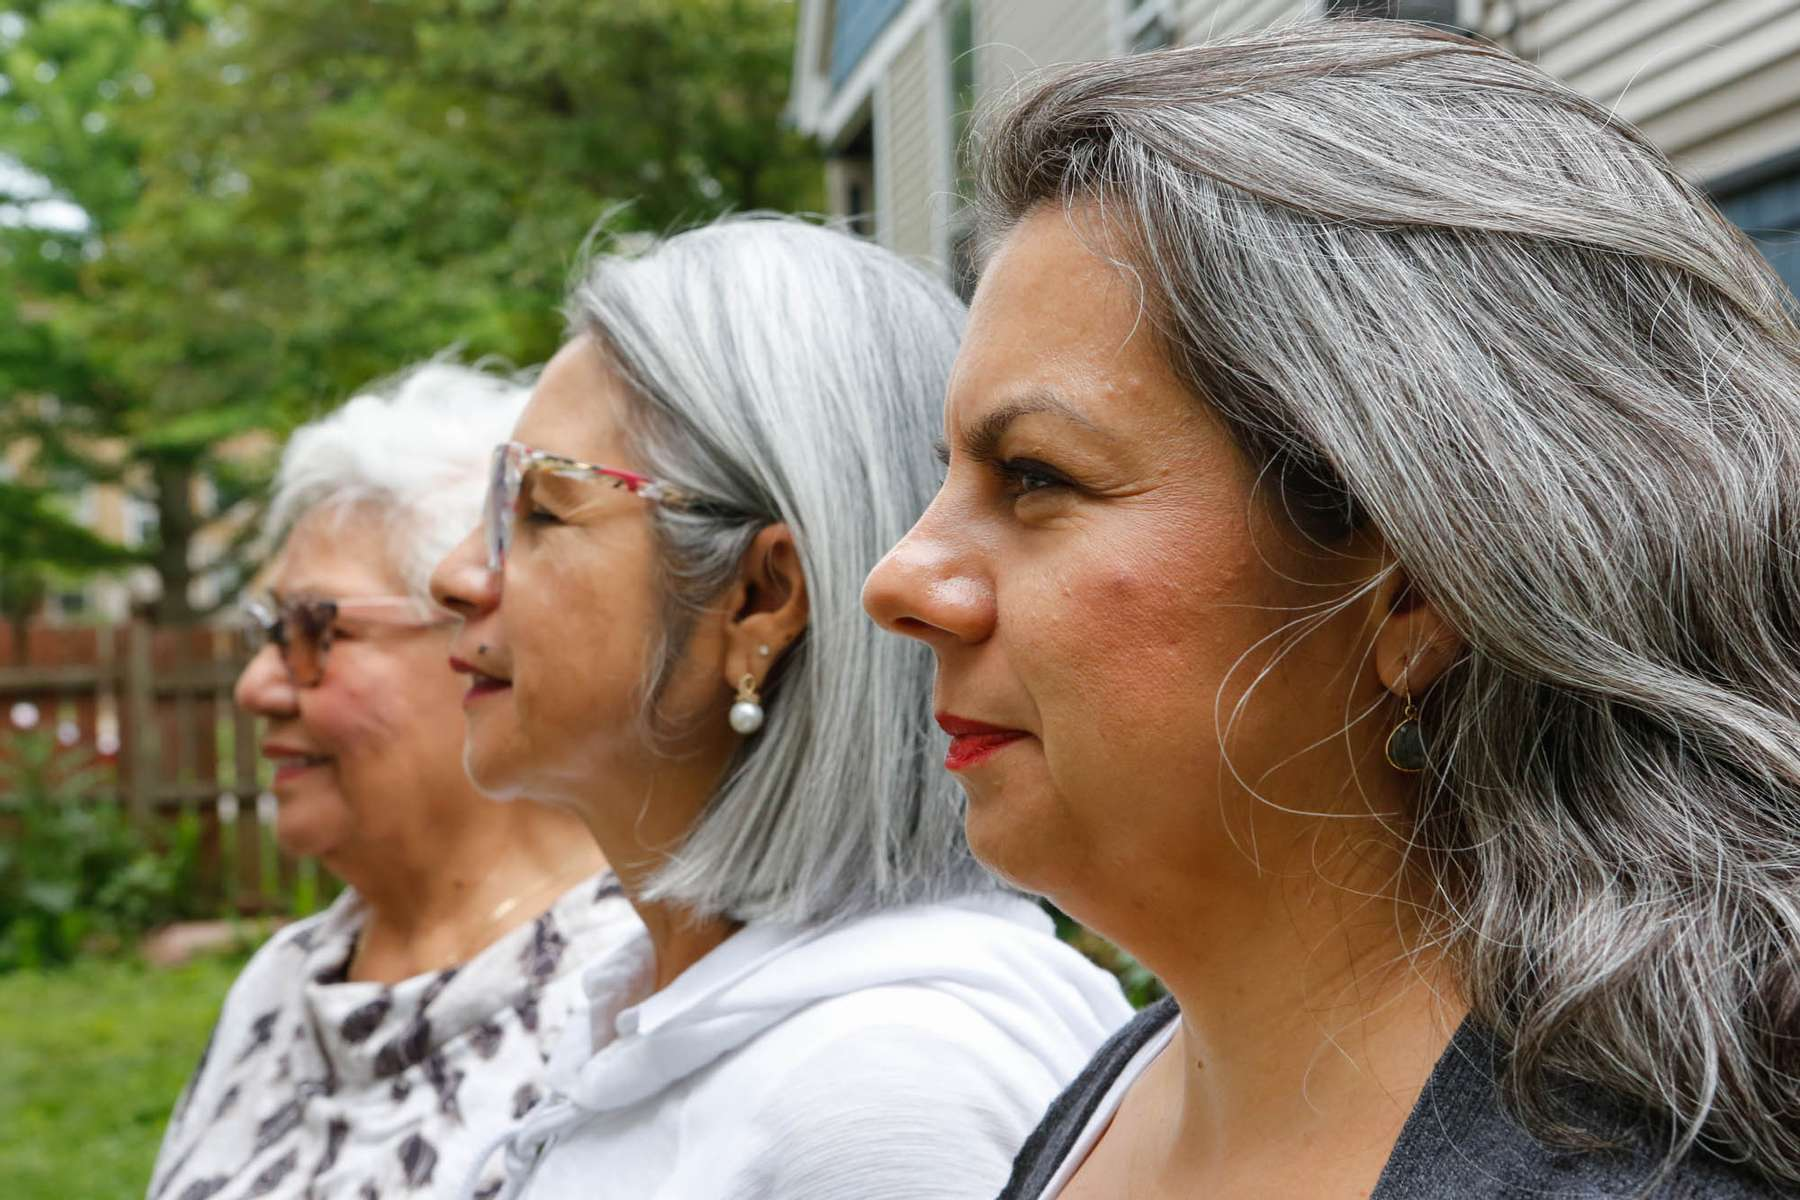 """Rosario Paz, Retired Seamstress, 88.  Luz-Elena Mortensen, Retired Saleswoman, 66. Andrea de Fraga, Documentary Director/Producer, 43.  """"Each of has done something different with our hair. My Abuela just recently stopped dyeing her hair, my mom stopped decades ago, and I just never bothered. My mom had to do a really short haircut when she decided to stop dyeing her hair and I was around 20 at the time and I remember thinking that I could never pull off such a short haircut, so I never started dyeing it,"""" explains Andrea De Fraga."""